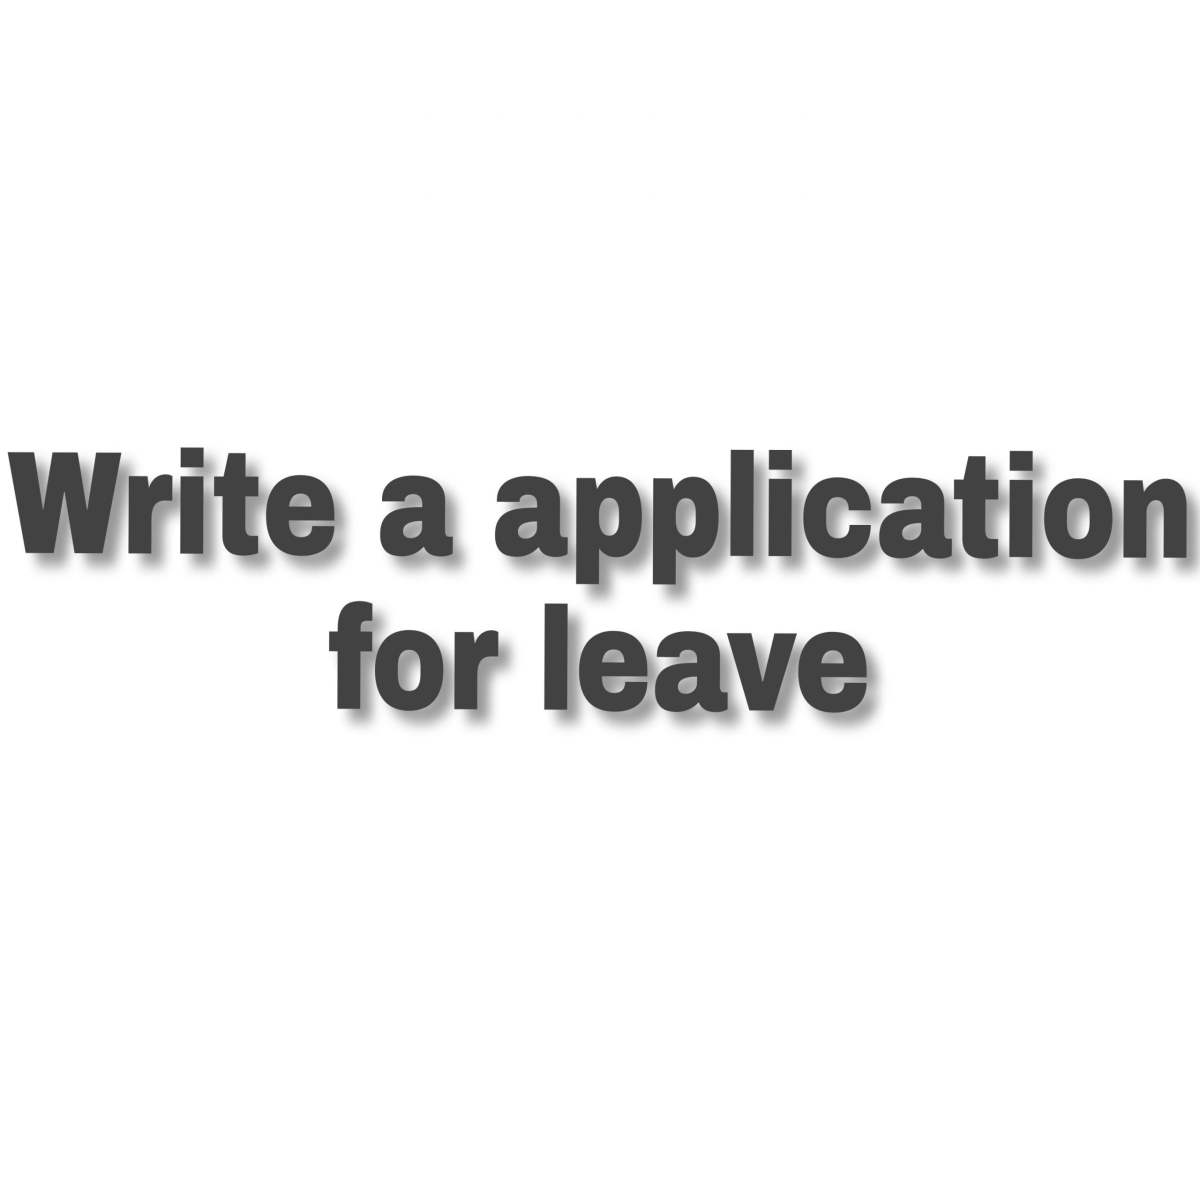 Write a application for leave